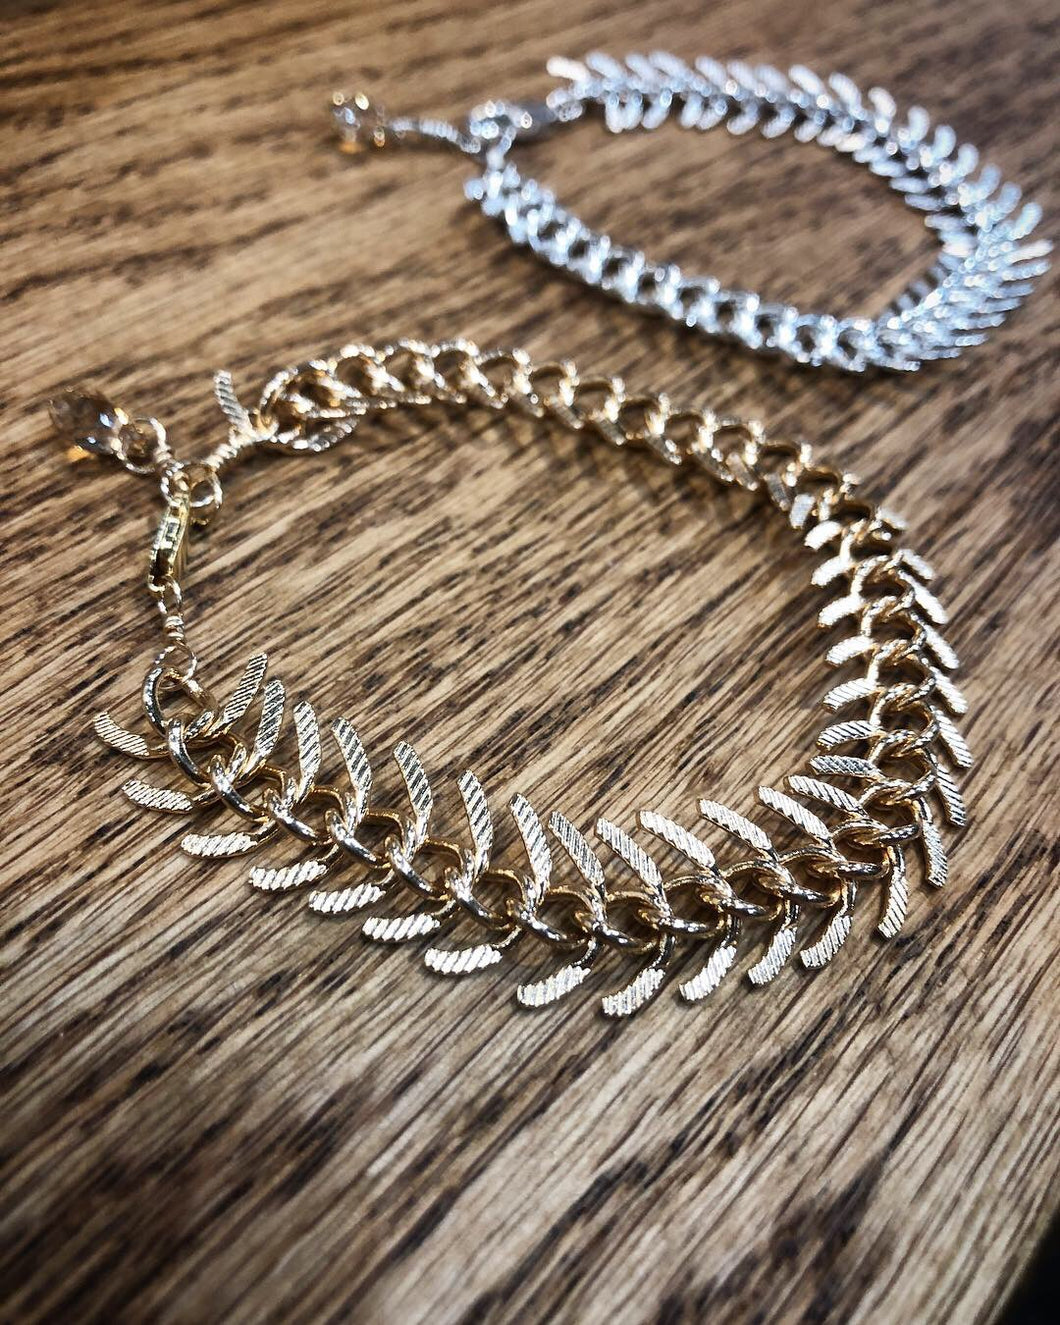 Zipper Bracelet in Silver or Gold